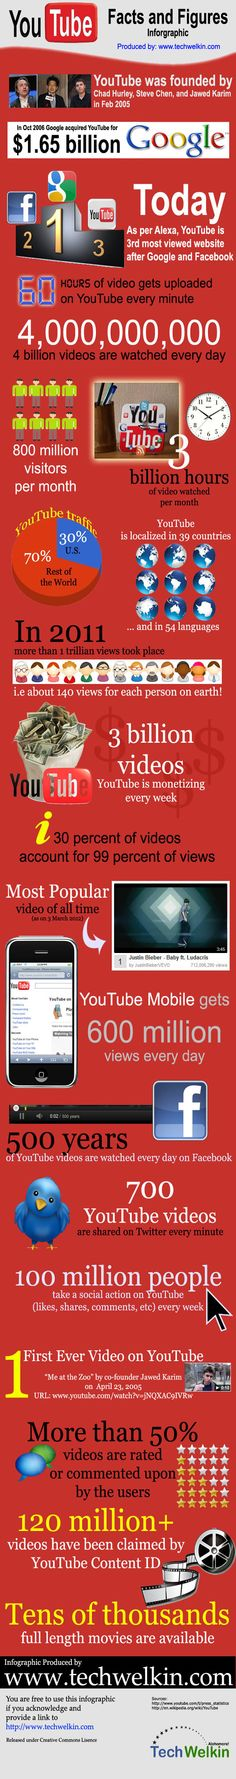 YouTube. Facts and Figures.